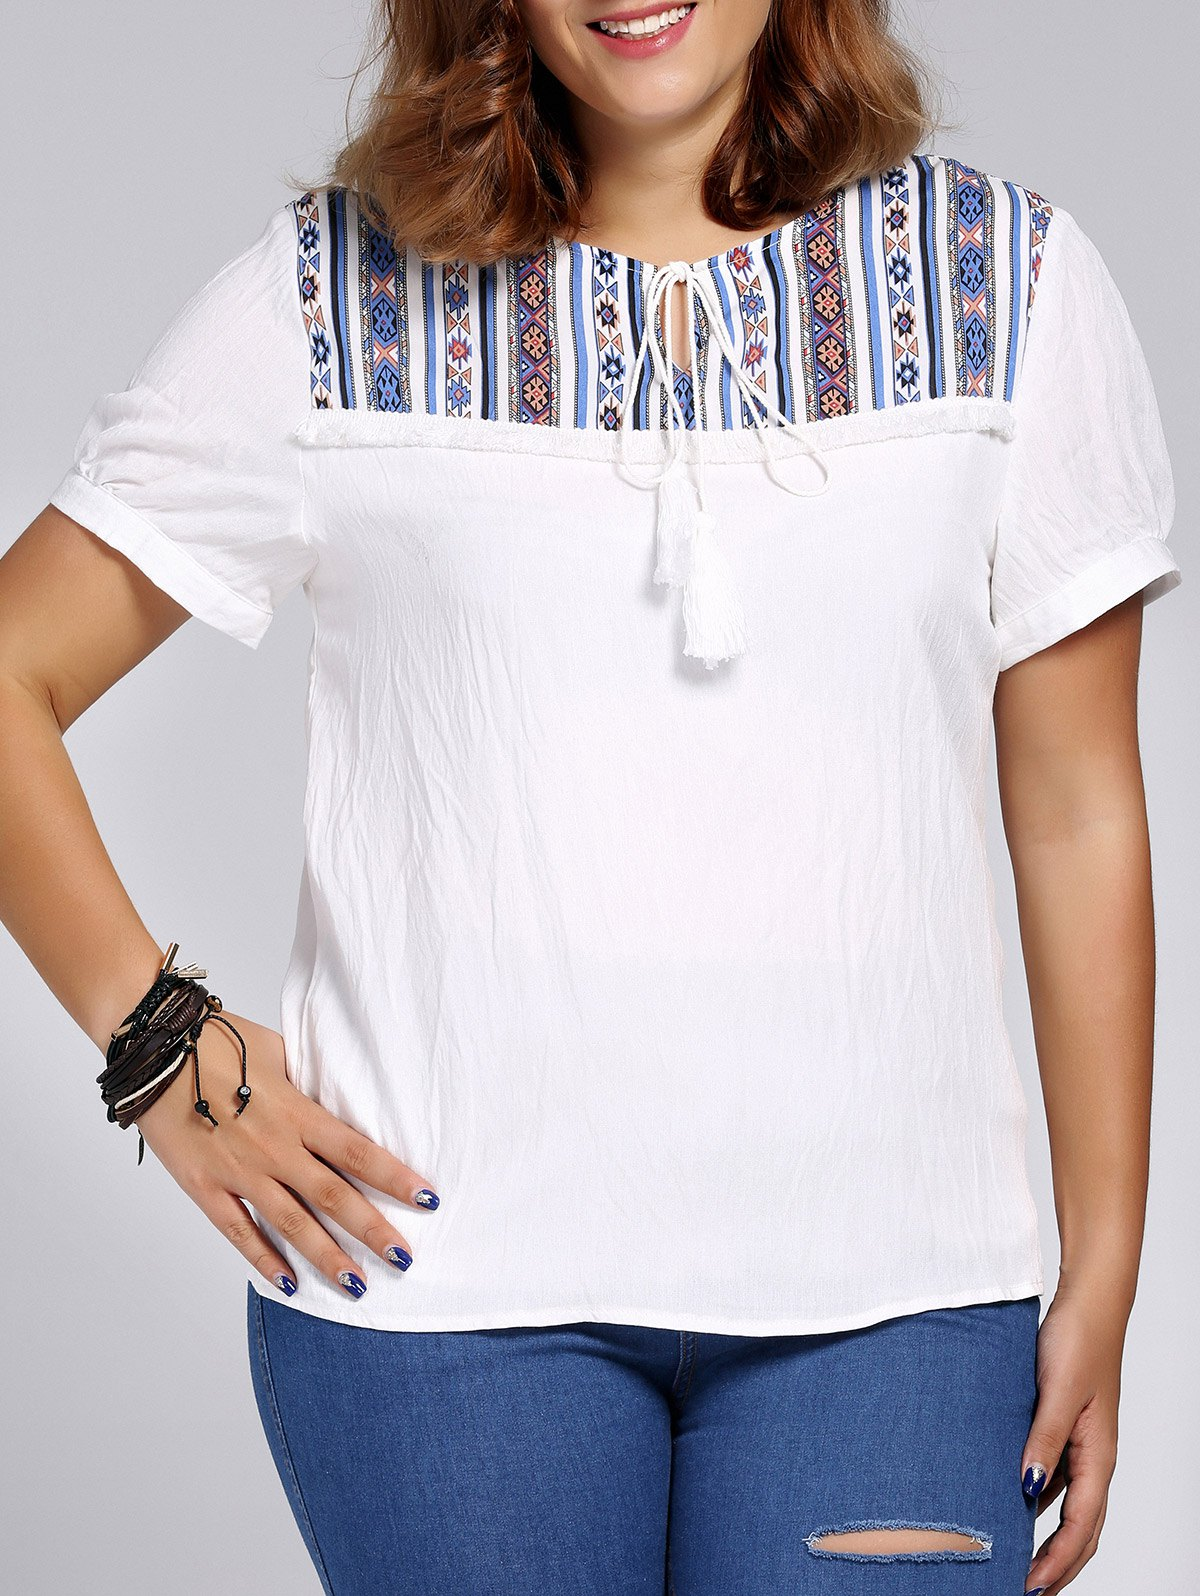 Women's Plus Size Ethnic Printed Spliced T-Shirt - WHITE 5XL